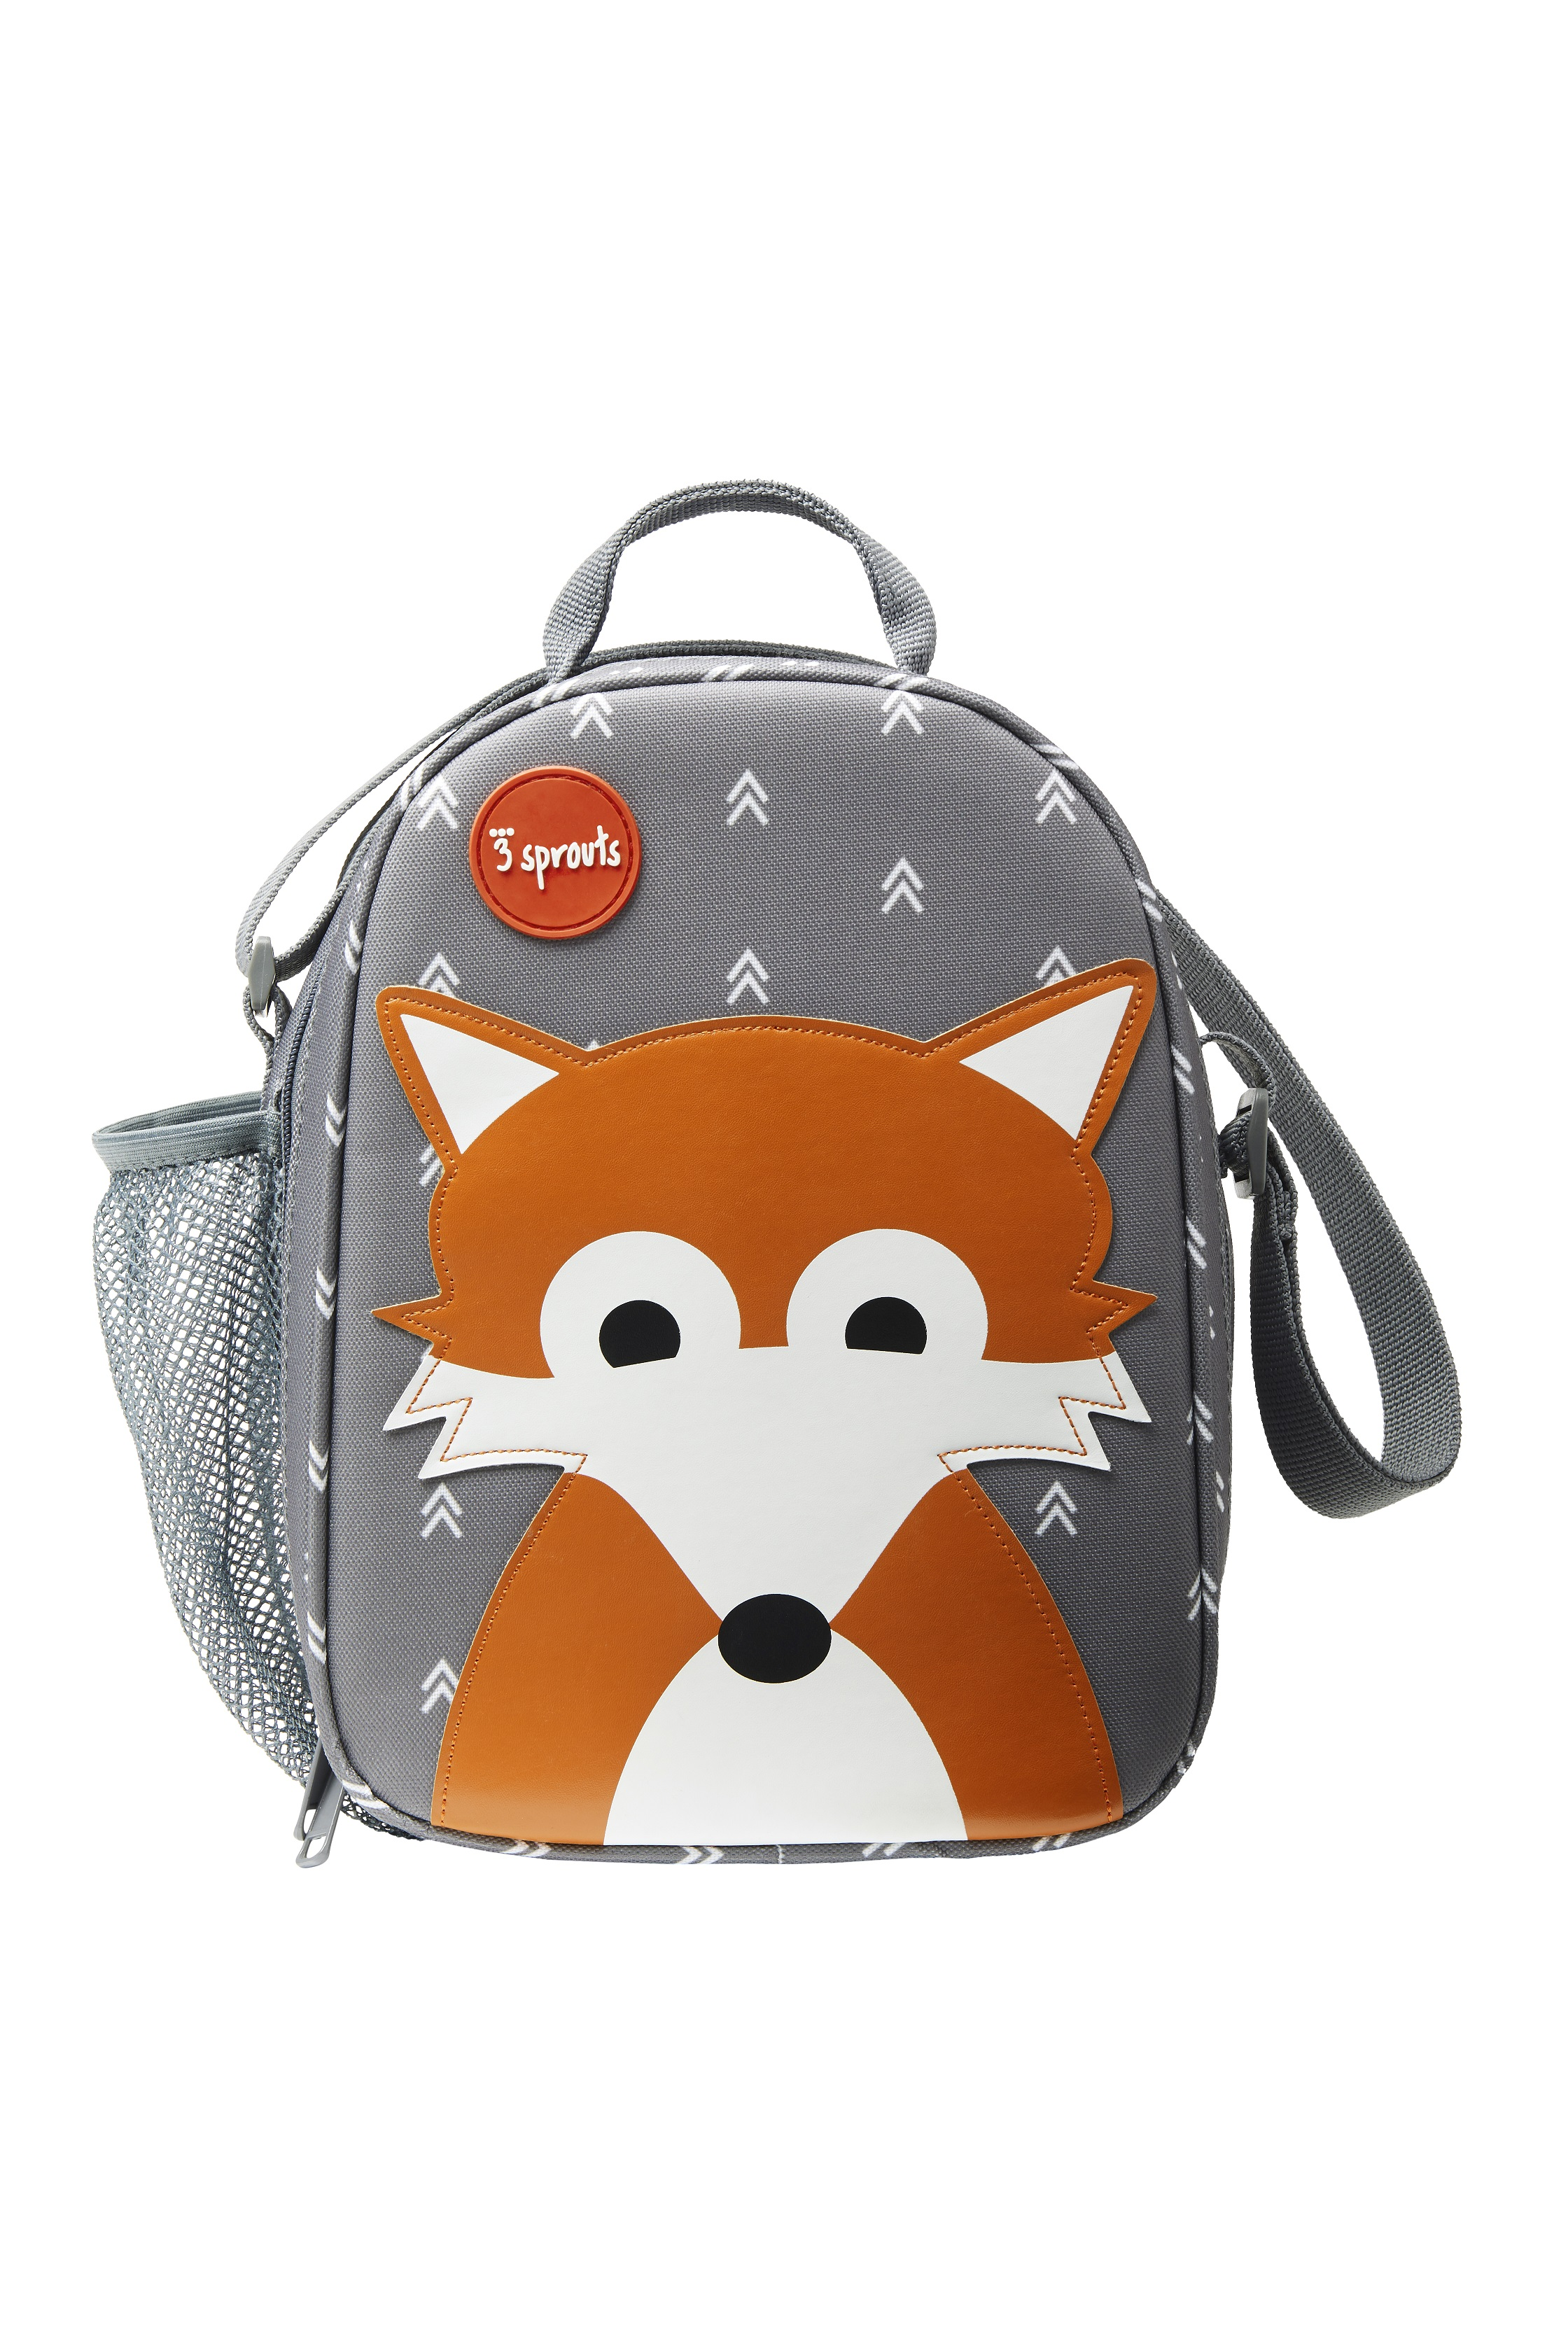 3 Sprouts - Lunch Bag - Gray Fox